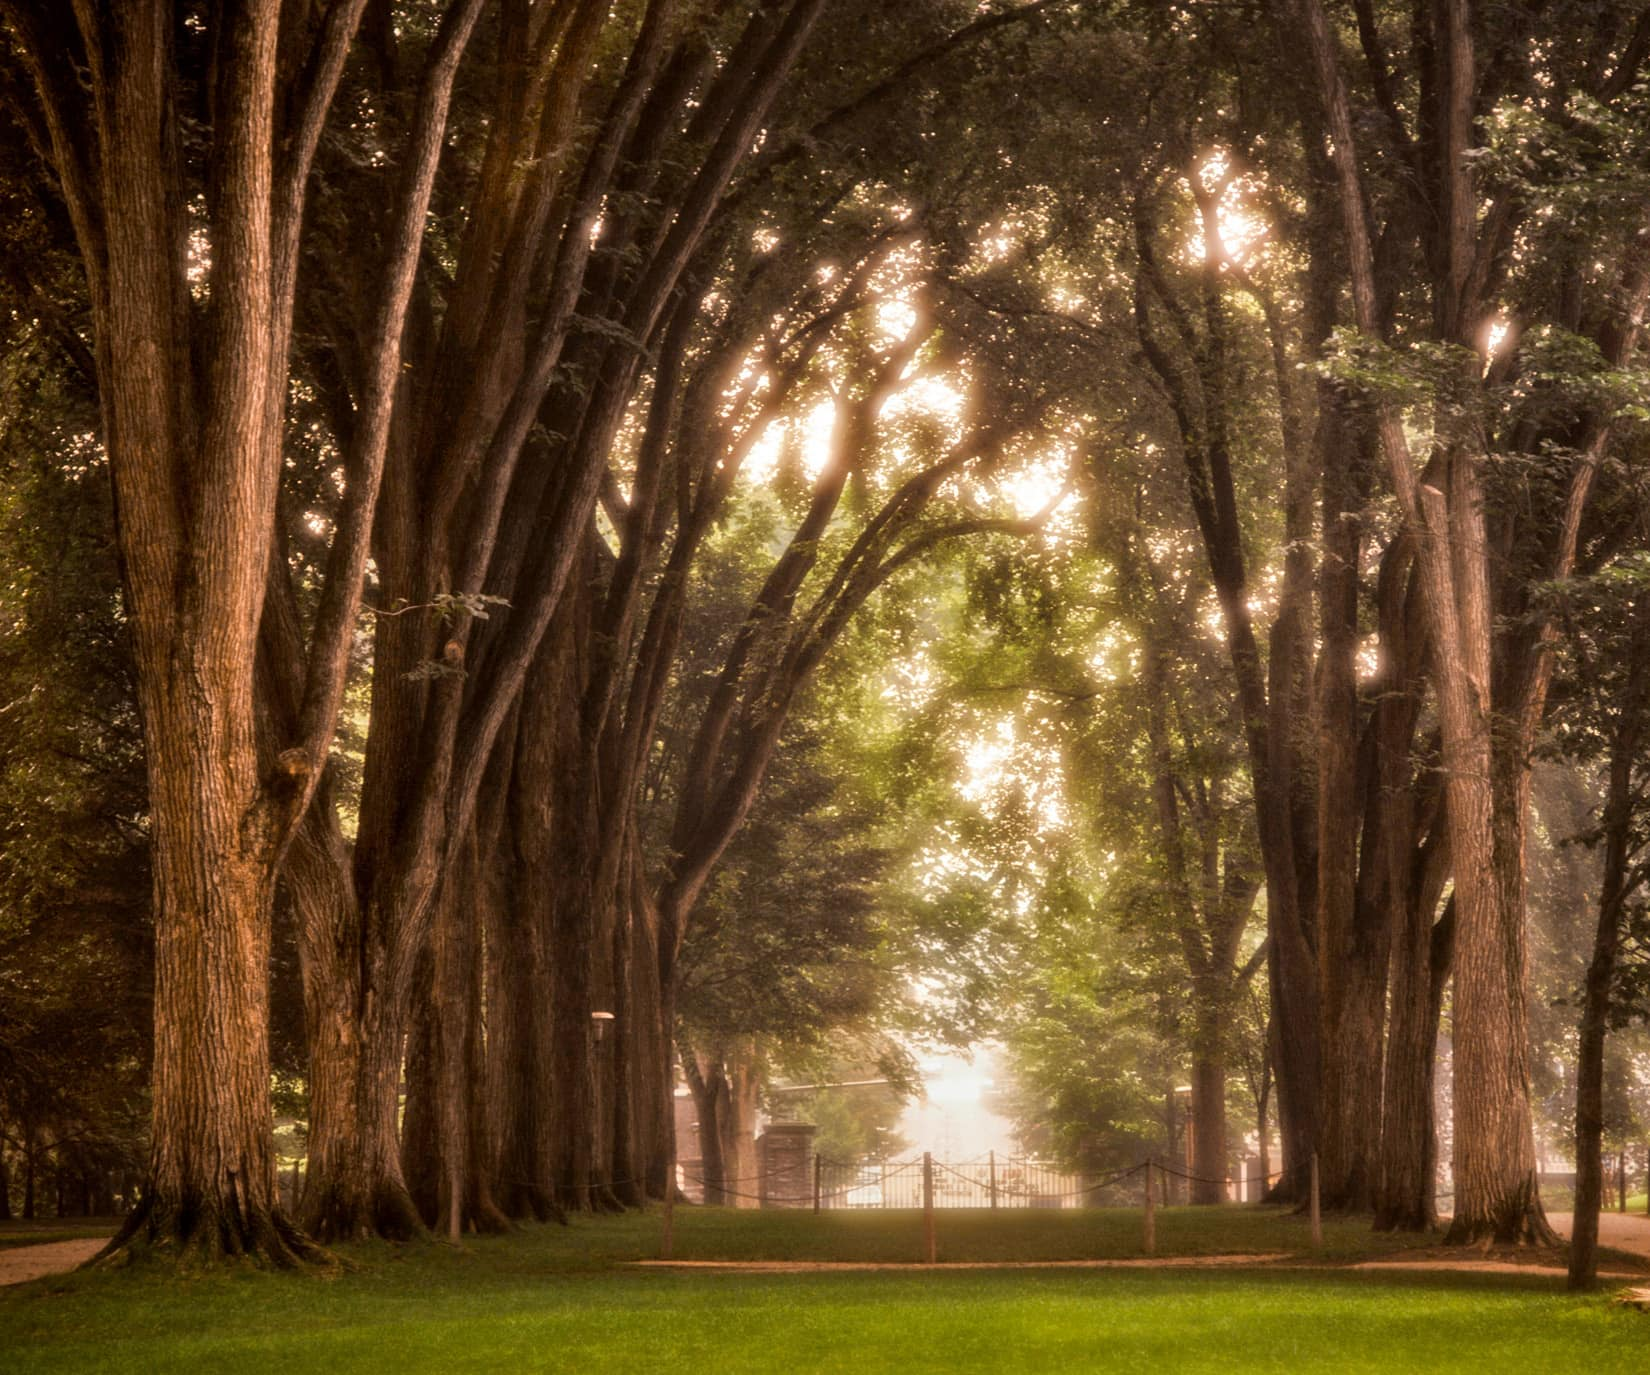 Through the Elms, by Bob Lambert Photography (Penn State Campus, State College, PA)